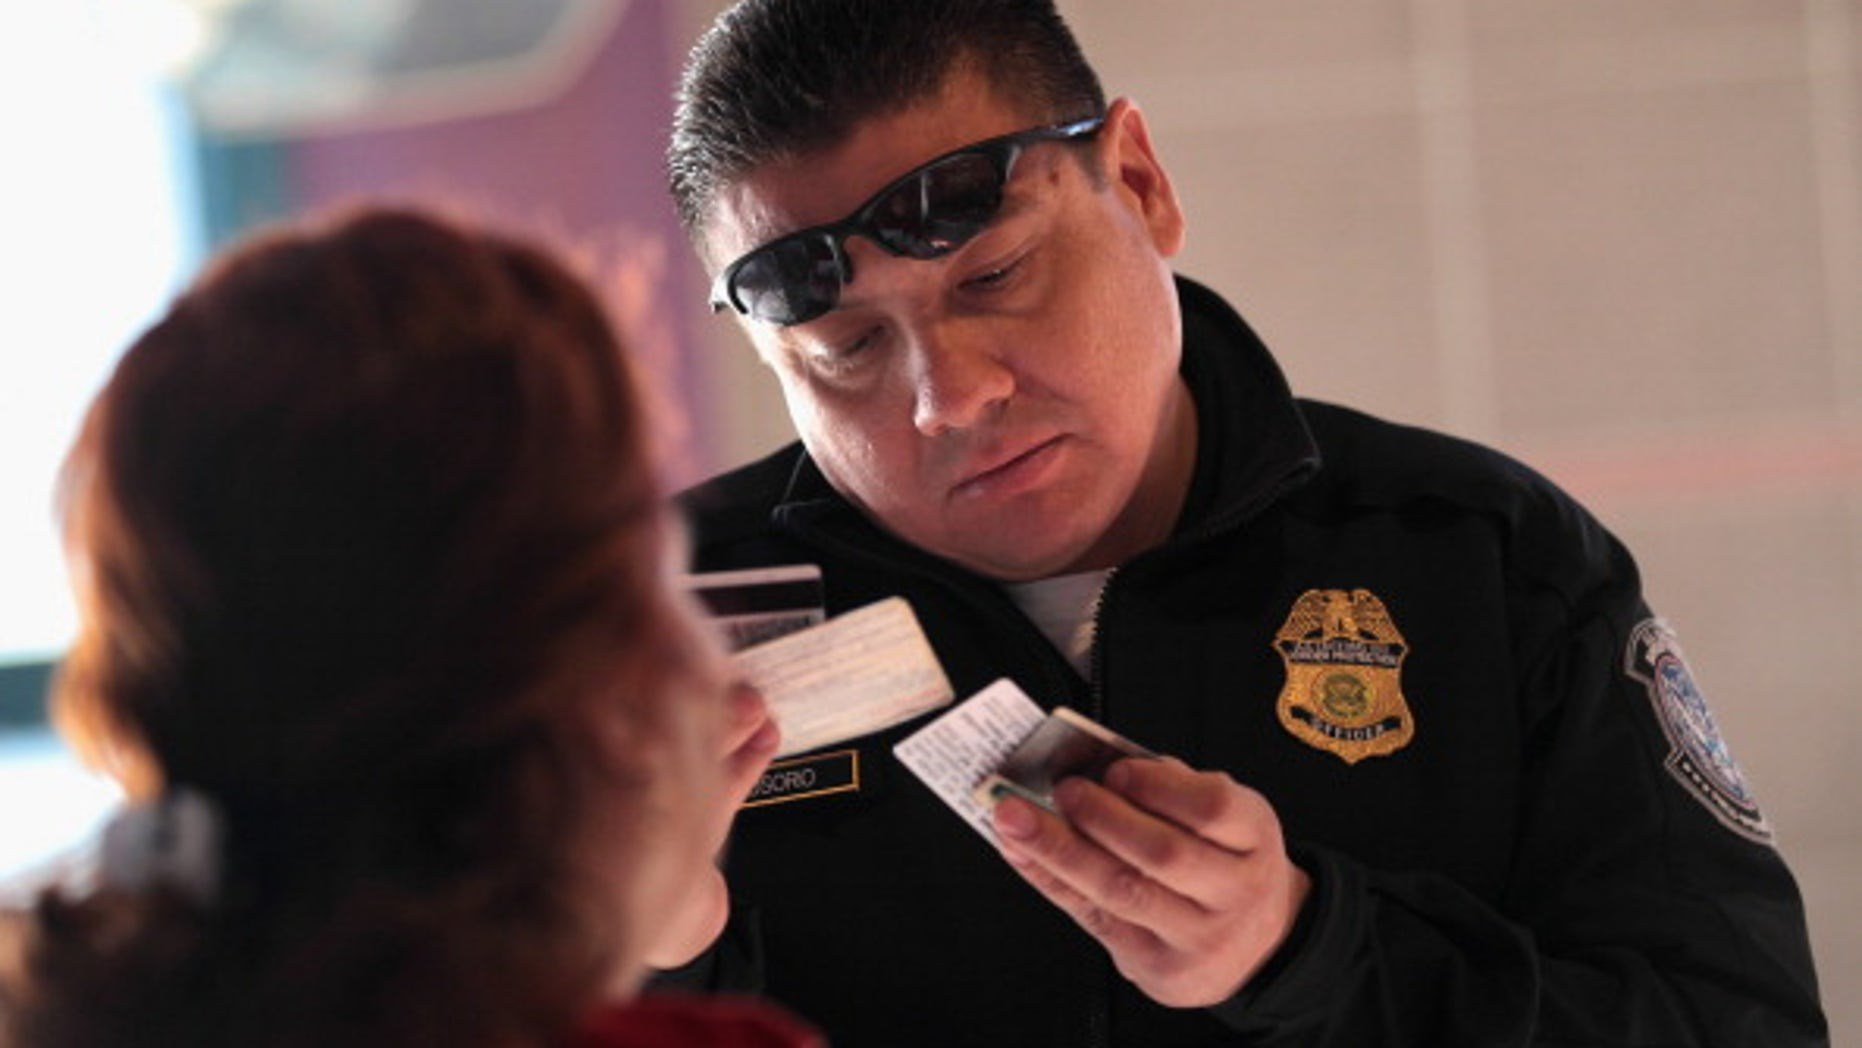 "NOGALES, AZ - DECEMBER 10:  Officer Juan Osorio inspects the identifications of a Mexican citizen at the U.S.-Mexico border crossing on December 10, 2010 in Nogales, Arizona. Despite Arizona's tough immigration enforcement laws, thousands of Mexican citizens have permits to work in the U.S. and commute daily from their homes across the border in Mexico. Border crossings, known as ""ports of entry,"" are run by the U.S. Office of Field Operations, which is part of the department of U.S. Customs and Border Protection. Port personnel are the face at the border for most visitors and cargo entering the United States and are authorized to stop, question, search and examine everyone entering the country.  (Photo by John Moore/Getty Images)"